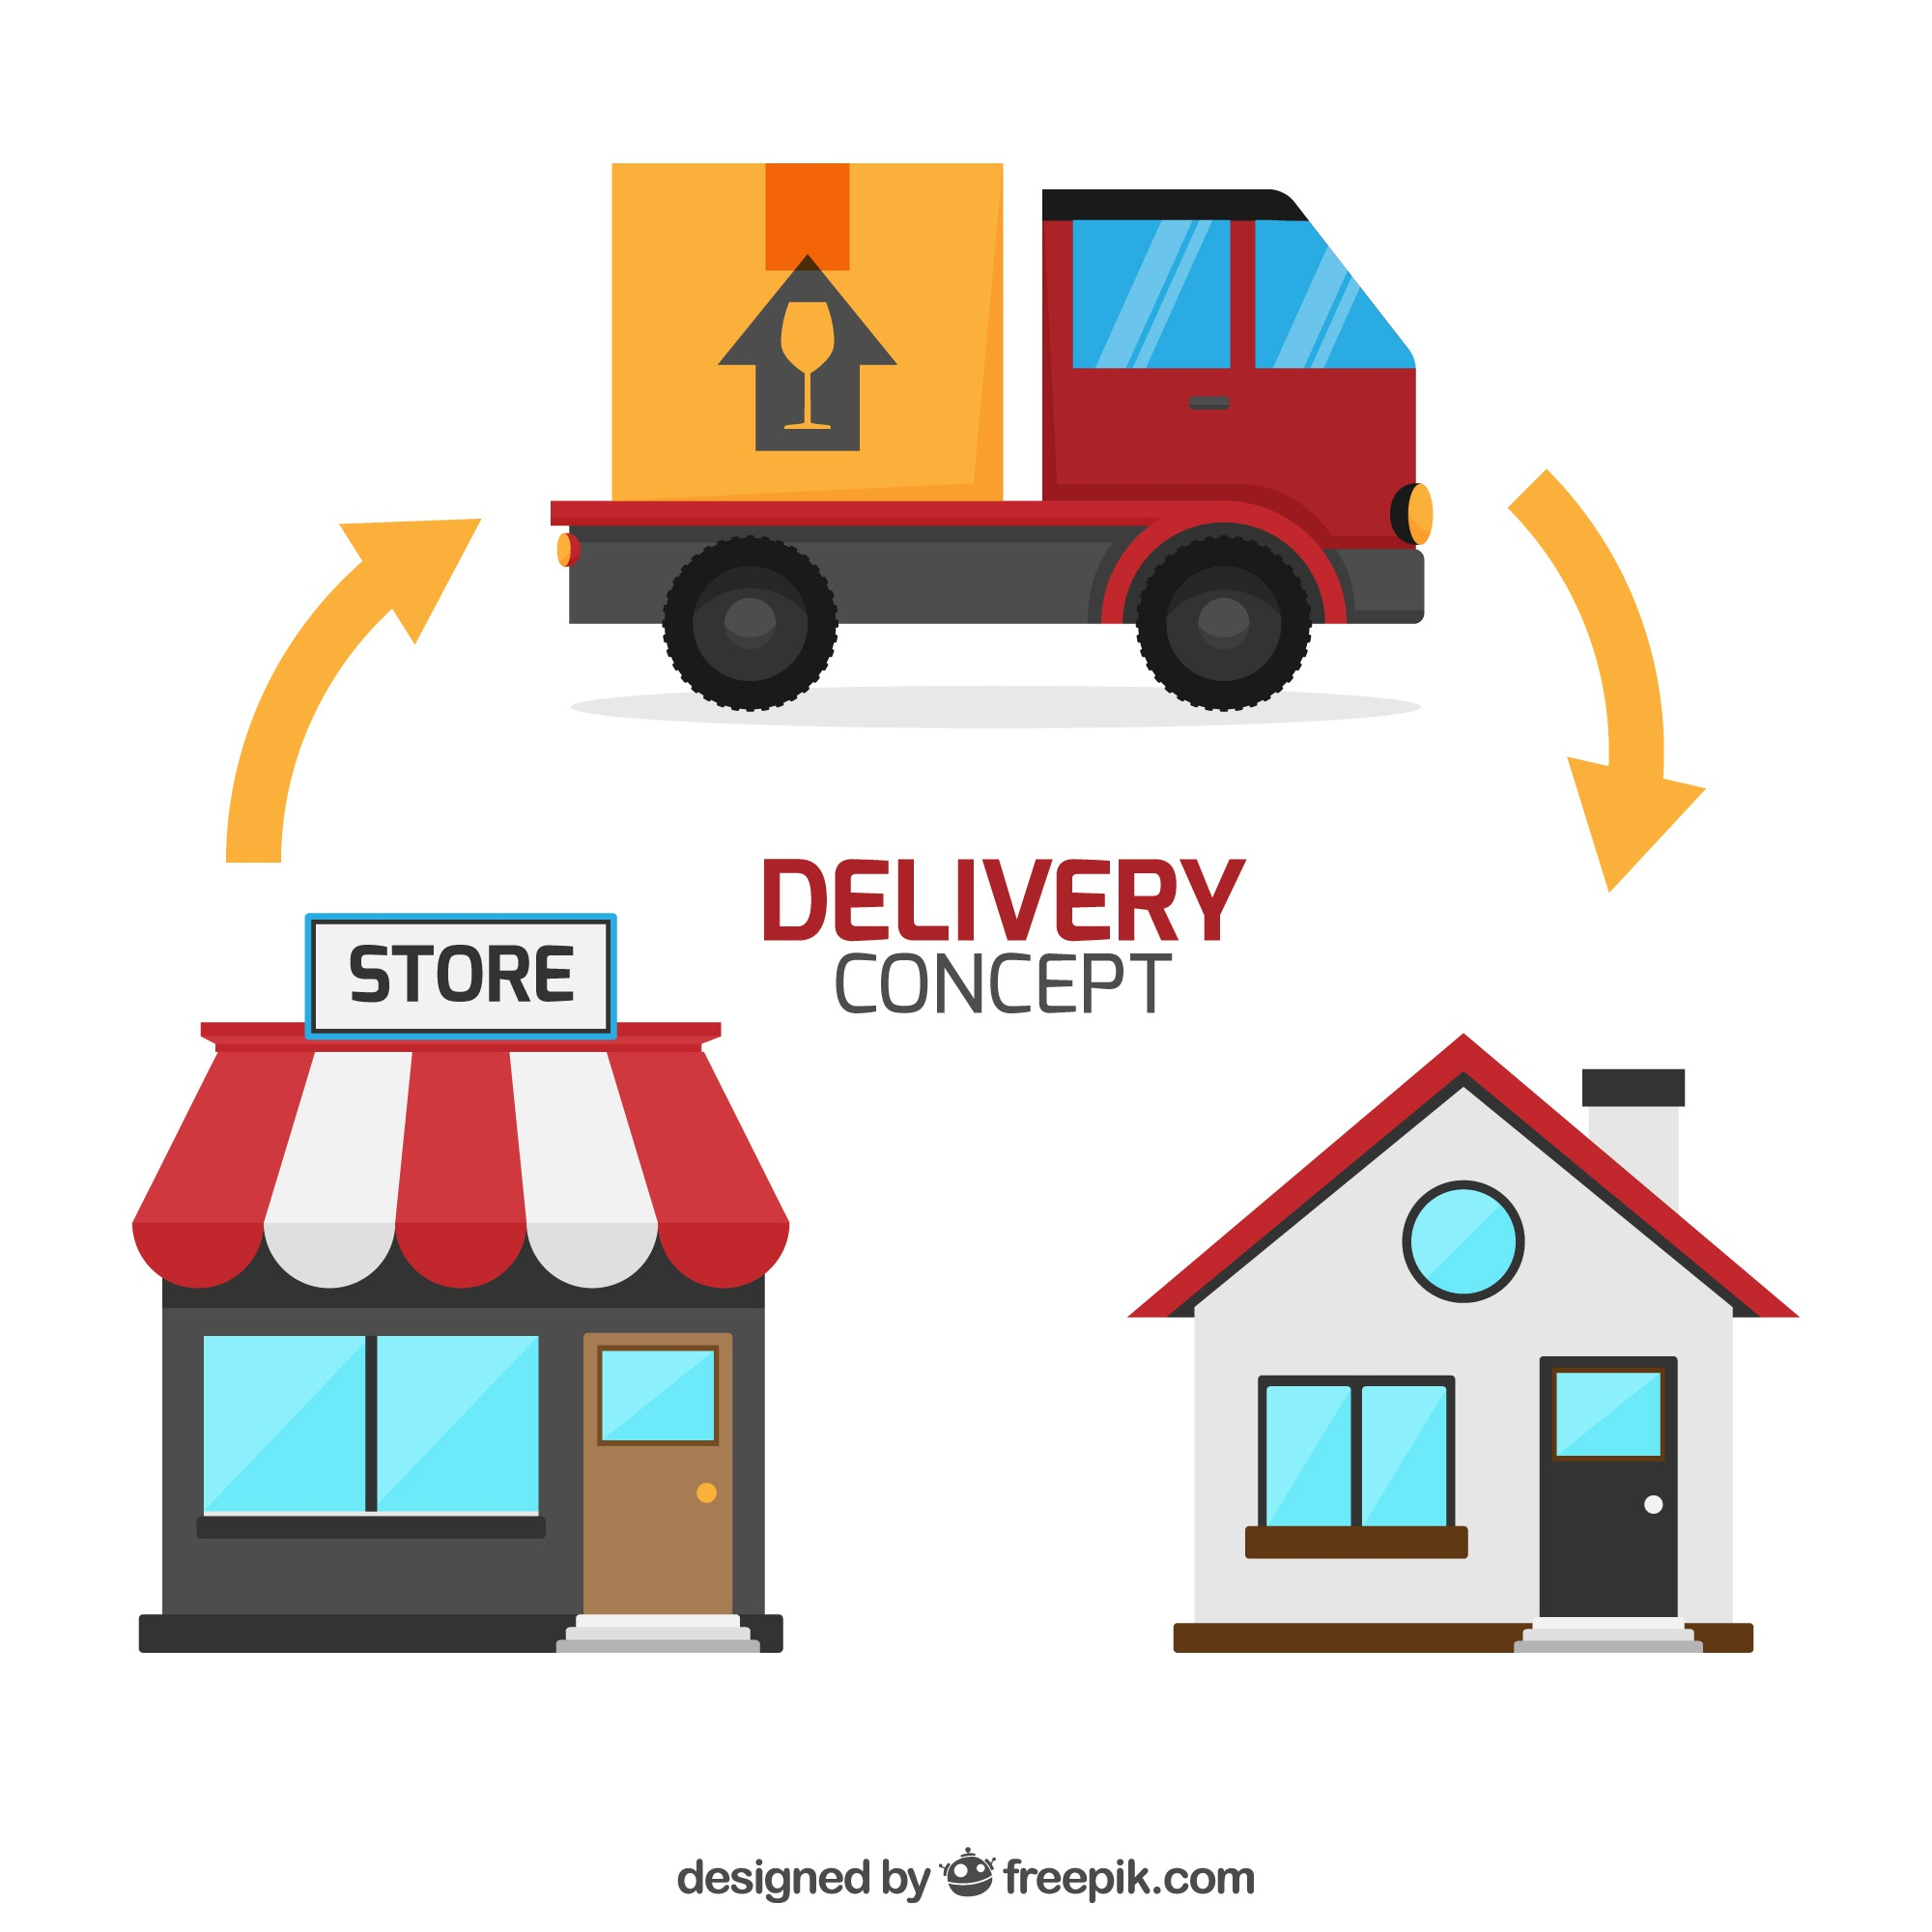 Delivery concept with house, shop and truck